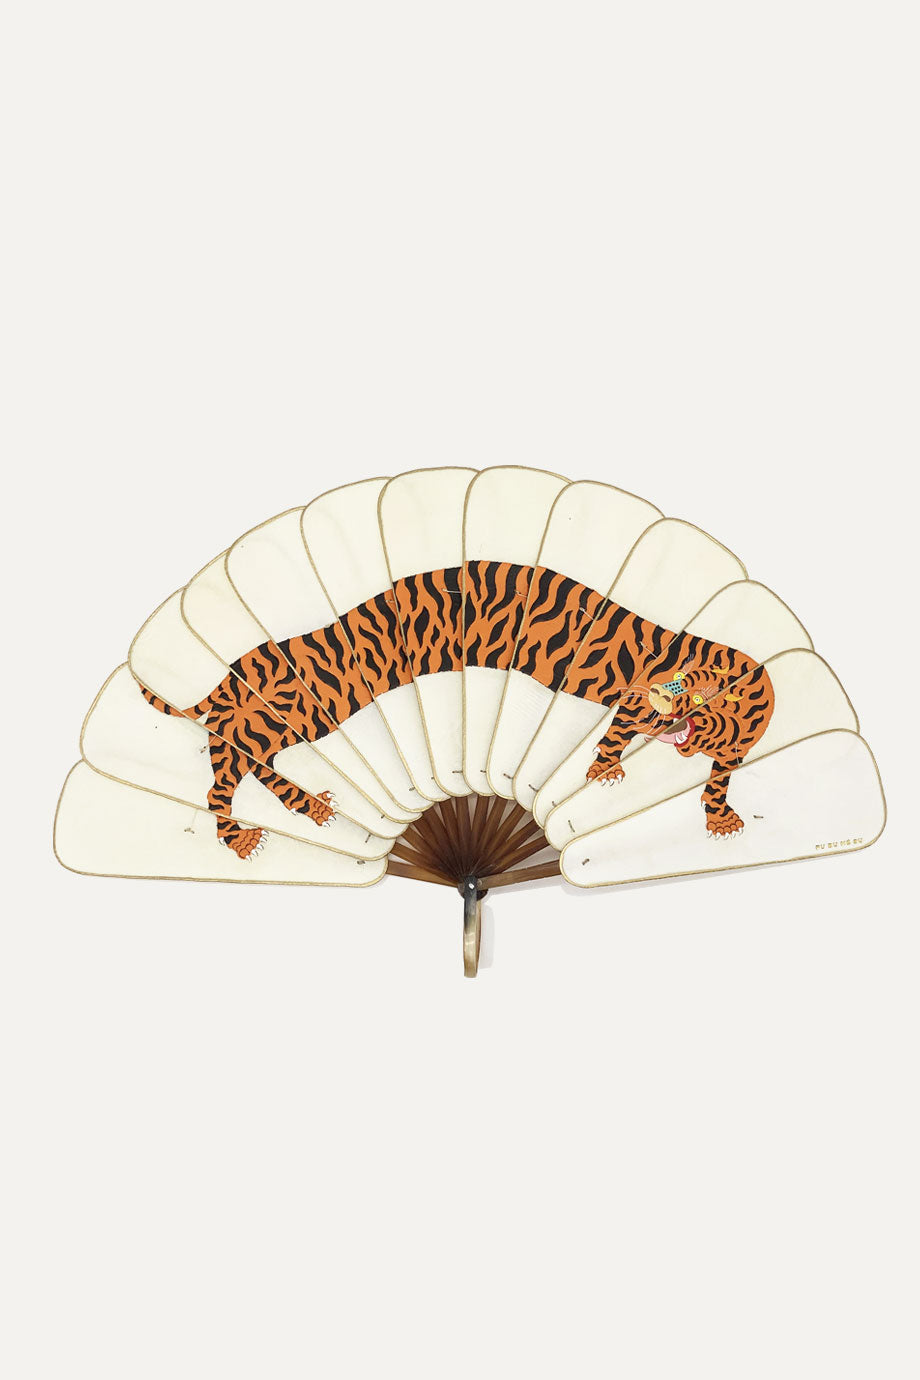 MACAN 'TIGER' FAN